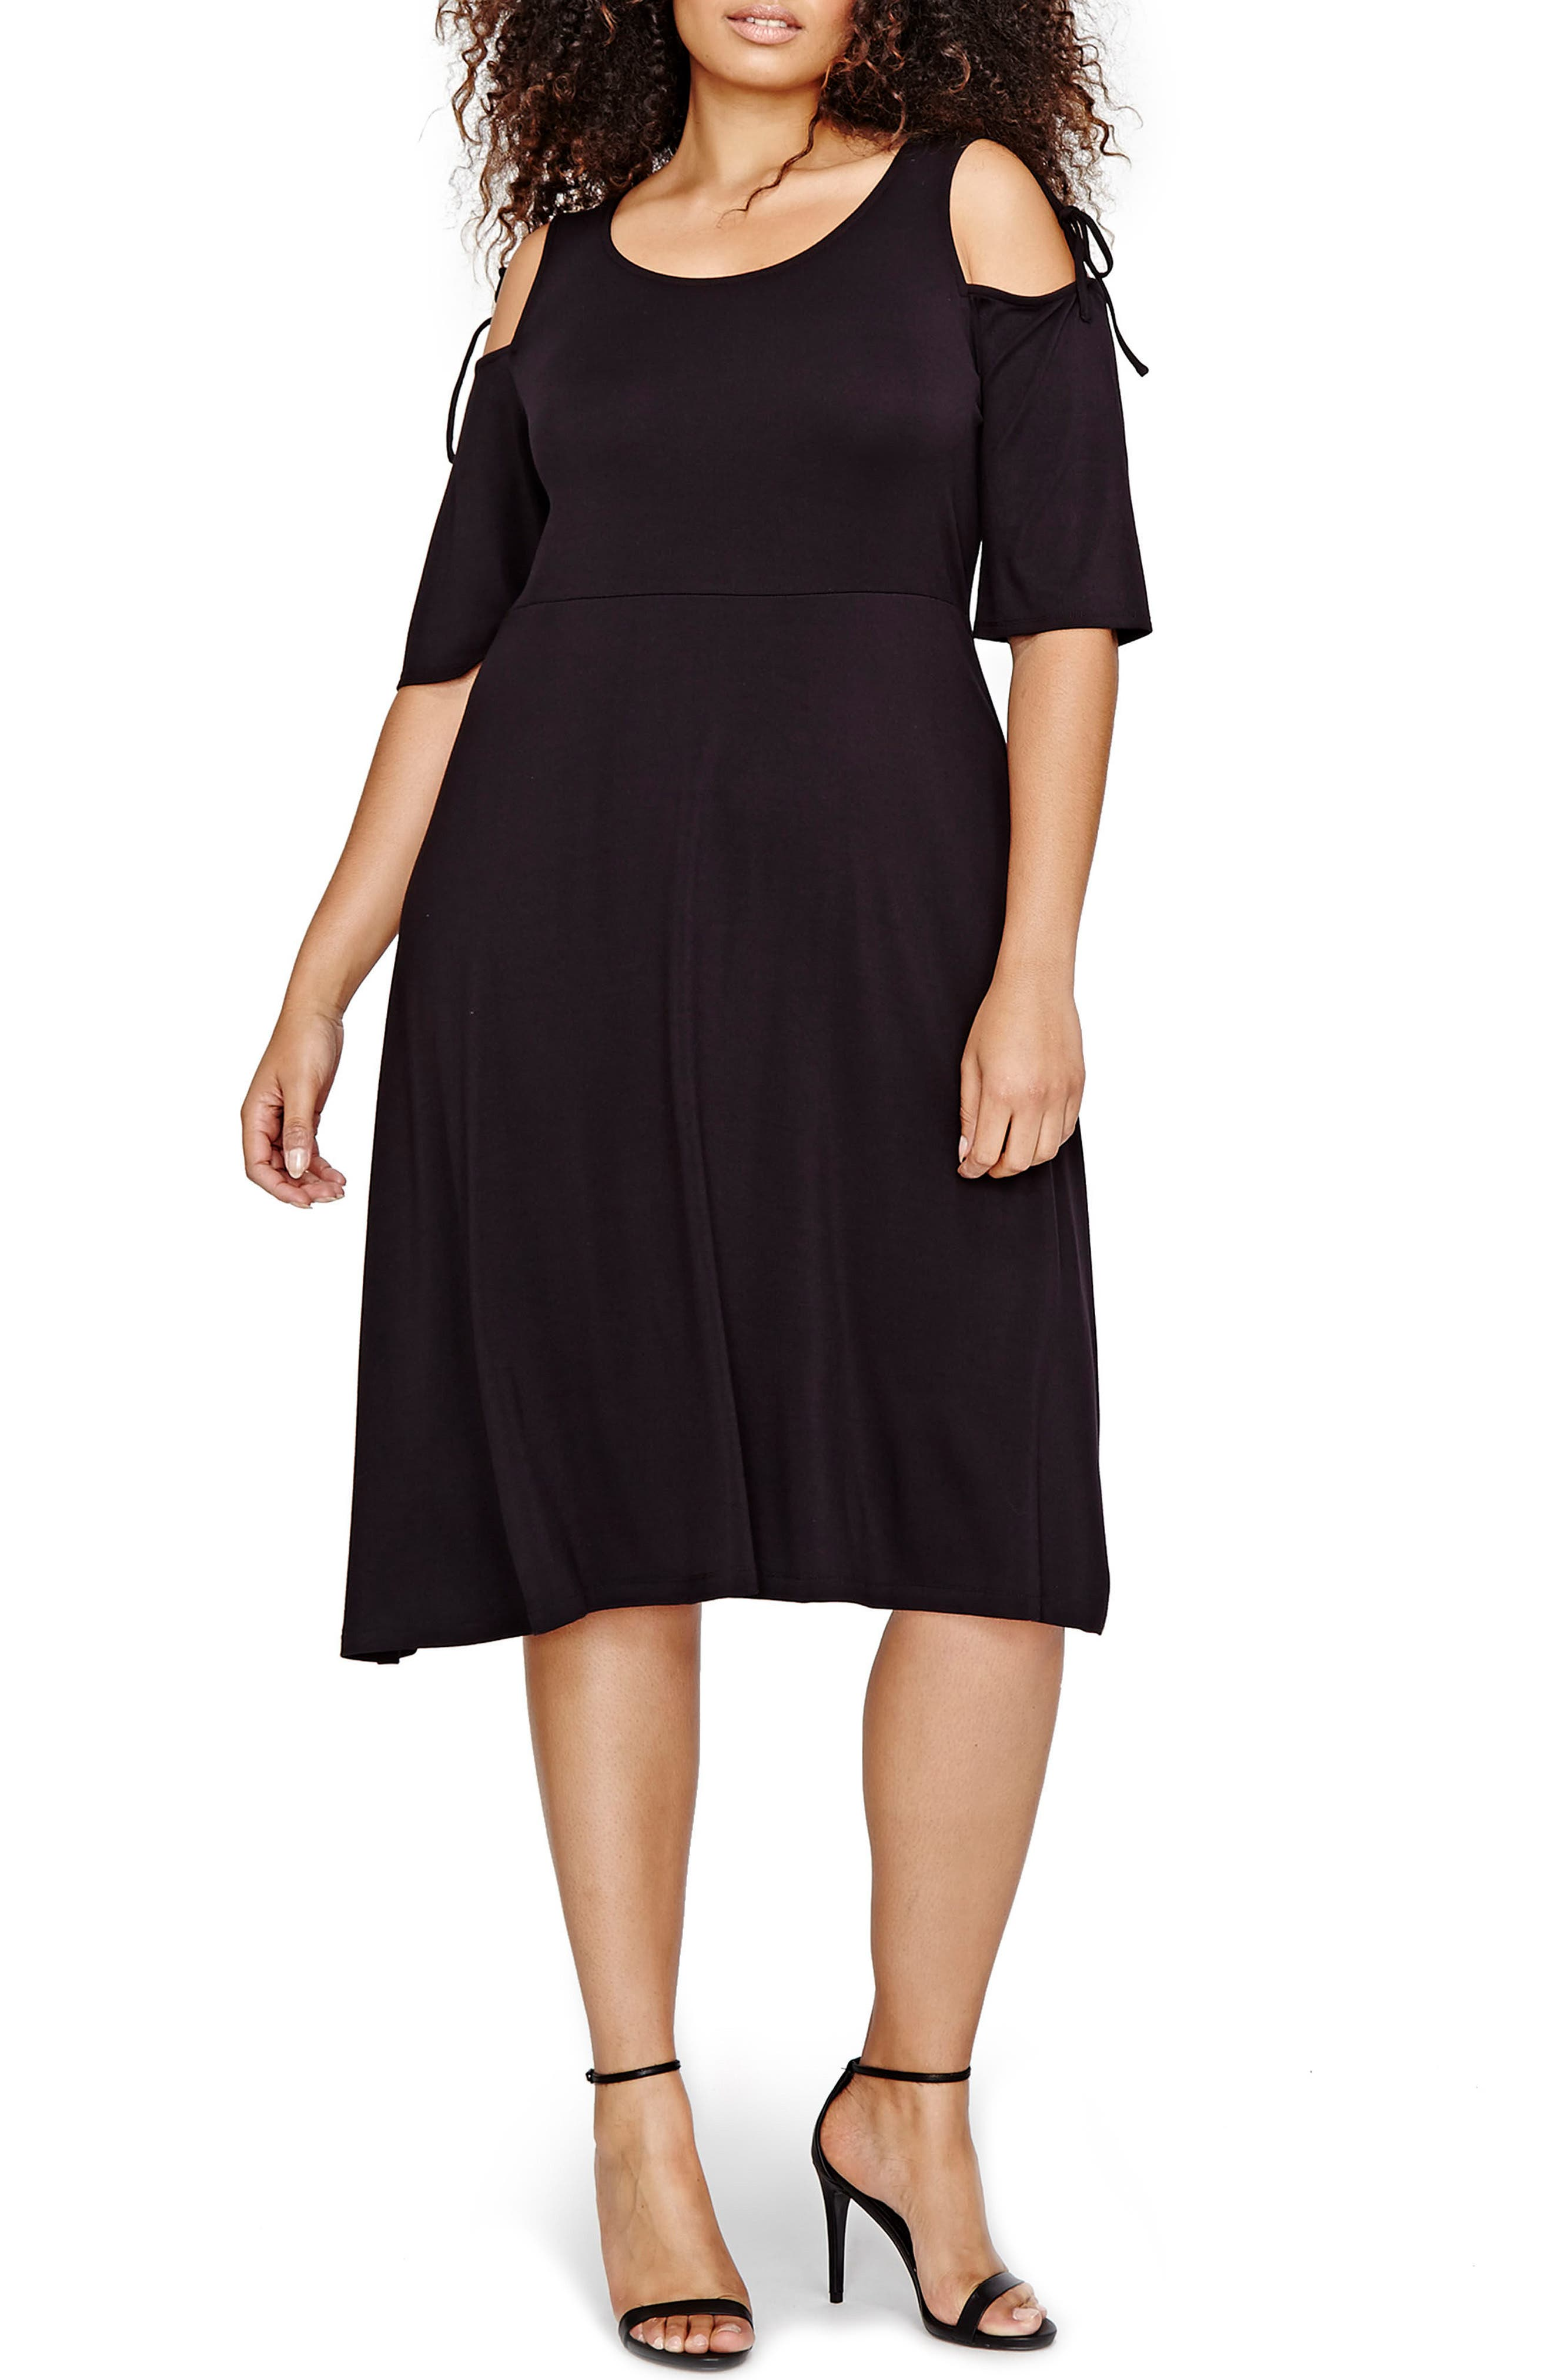 MICHEL STUDIO Shoulder Tie Fit & Flare Dress (Plus Size)